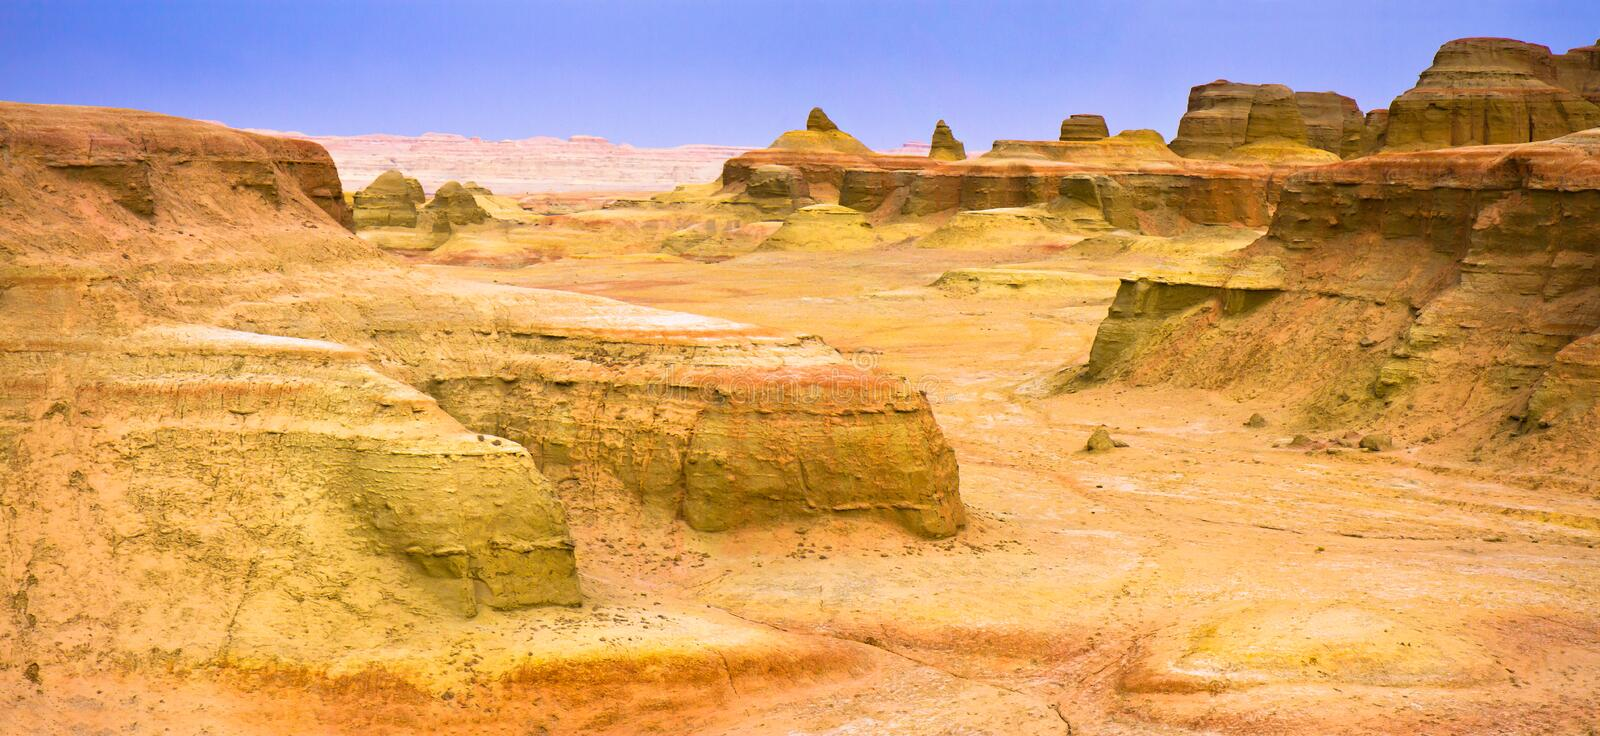 Download Panorama, Urho Ghost Castle, Xinjiang China Stock Photo - Image: 21358714